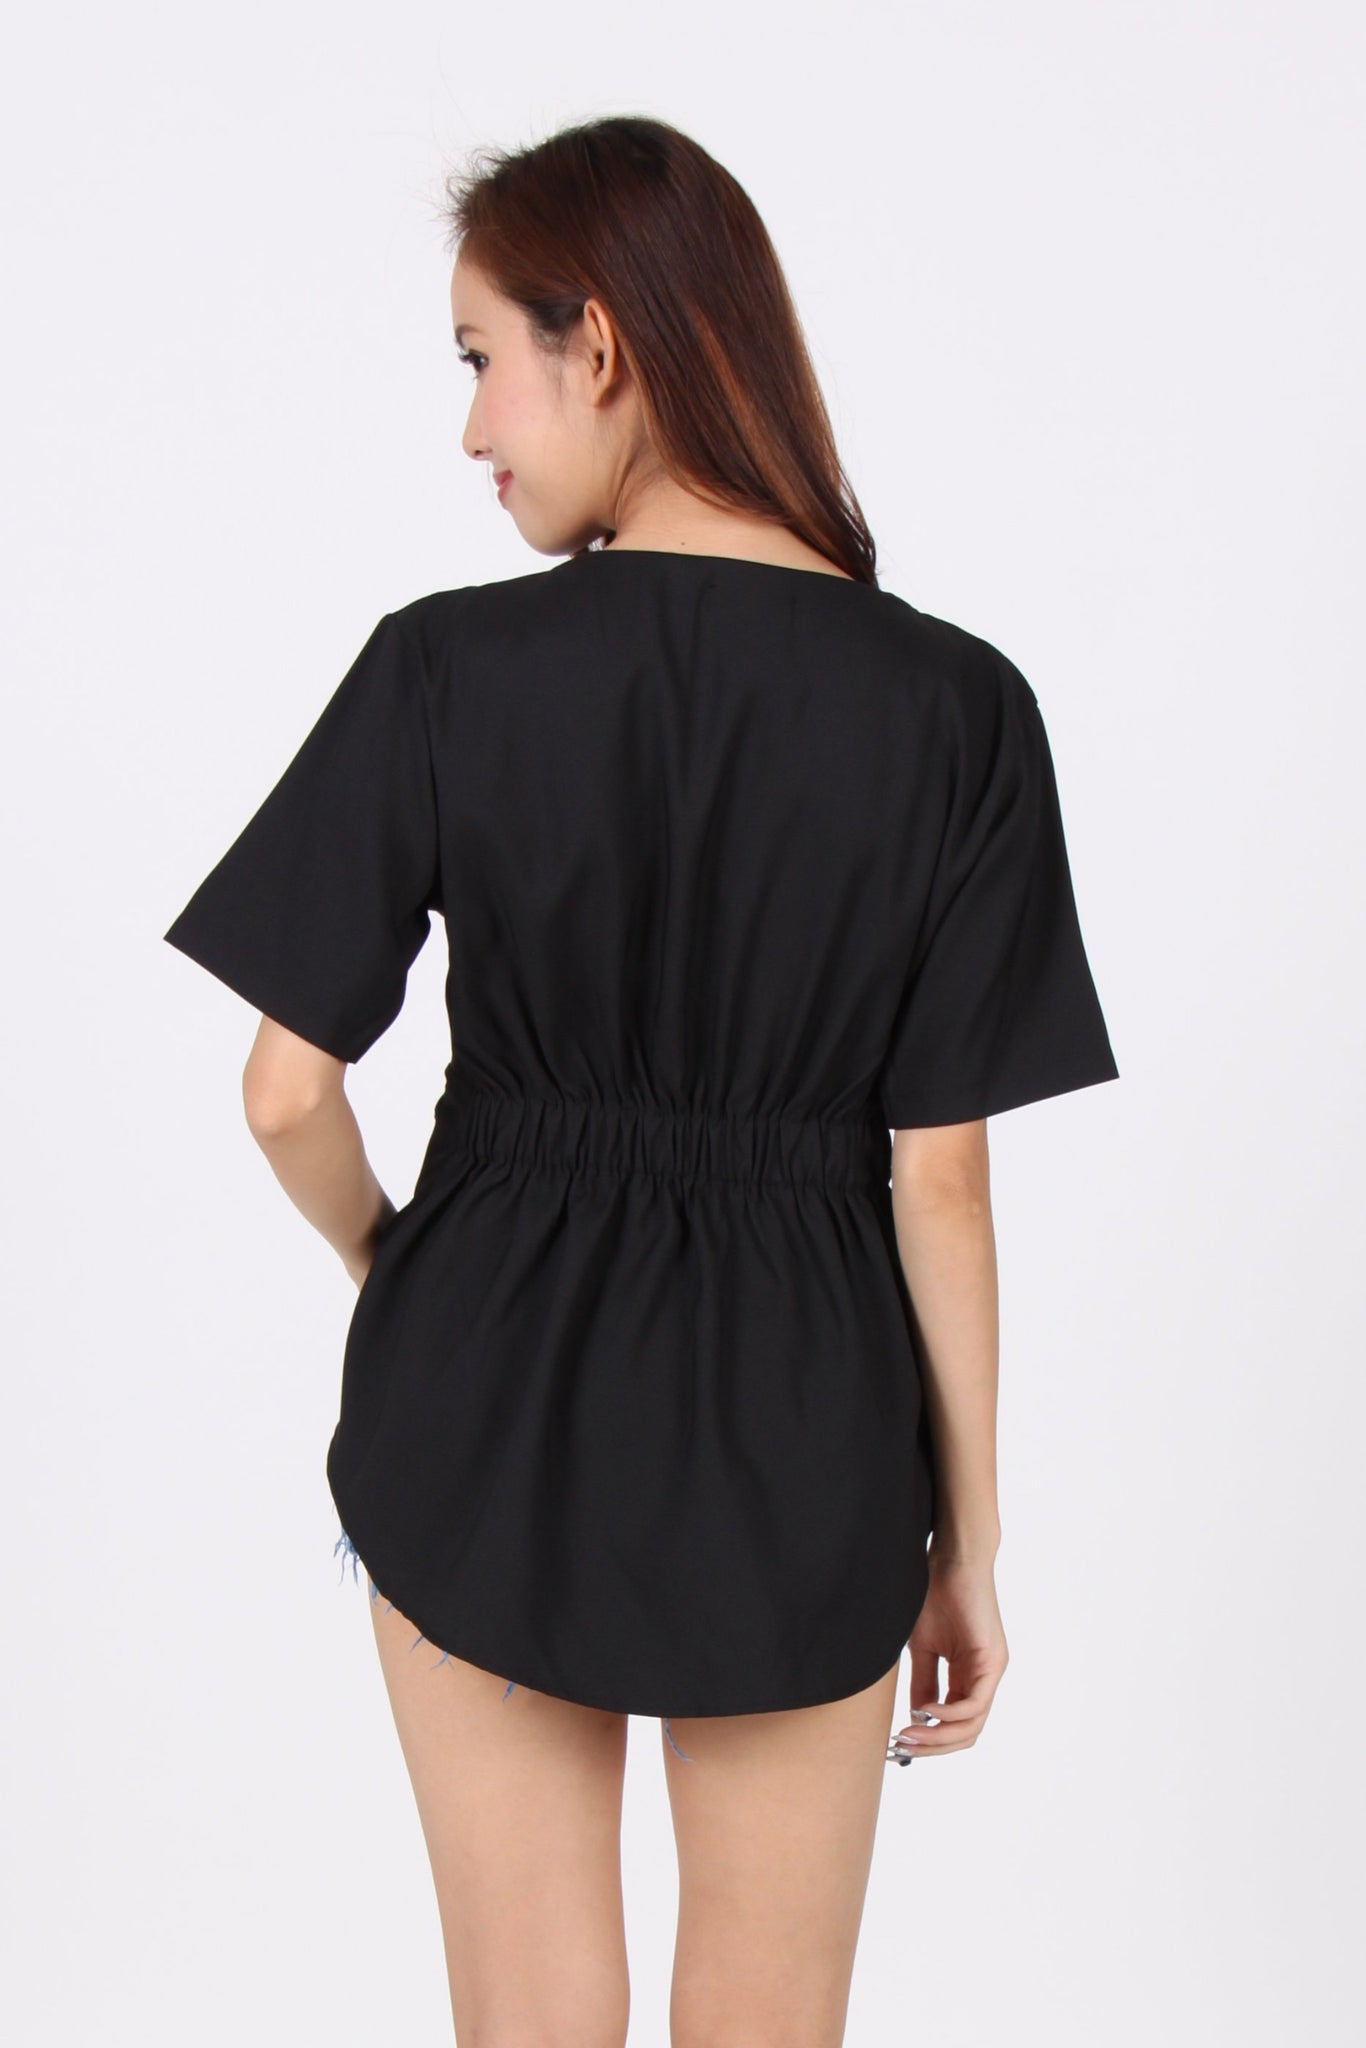 Sleeve Asymmetrical Top In Black